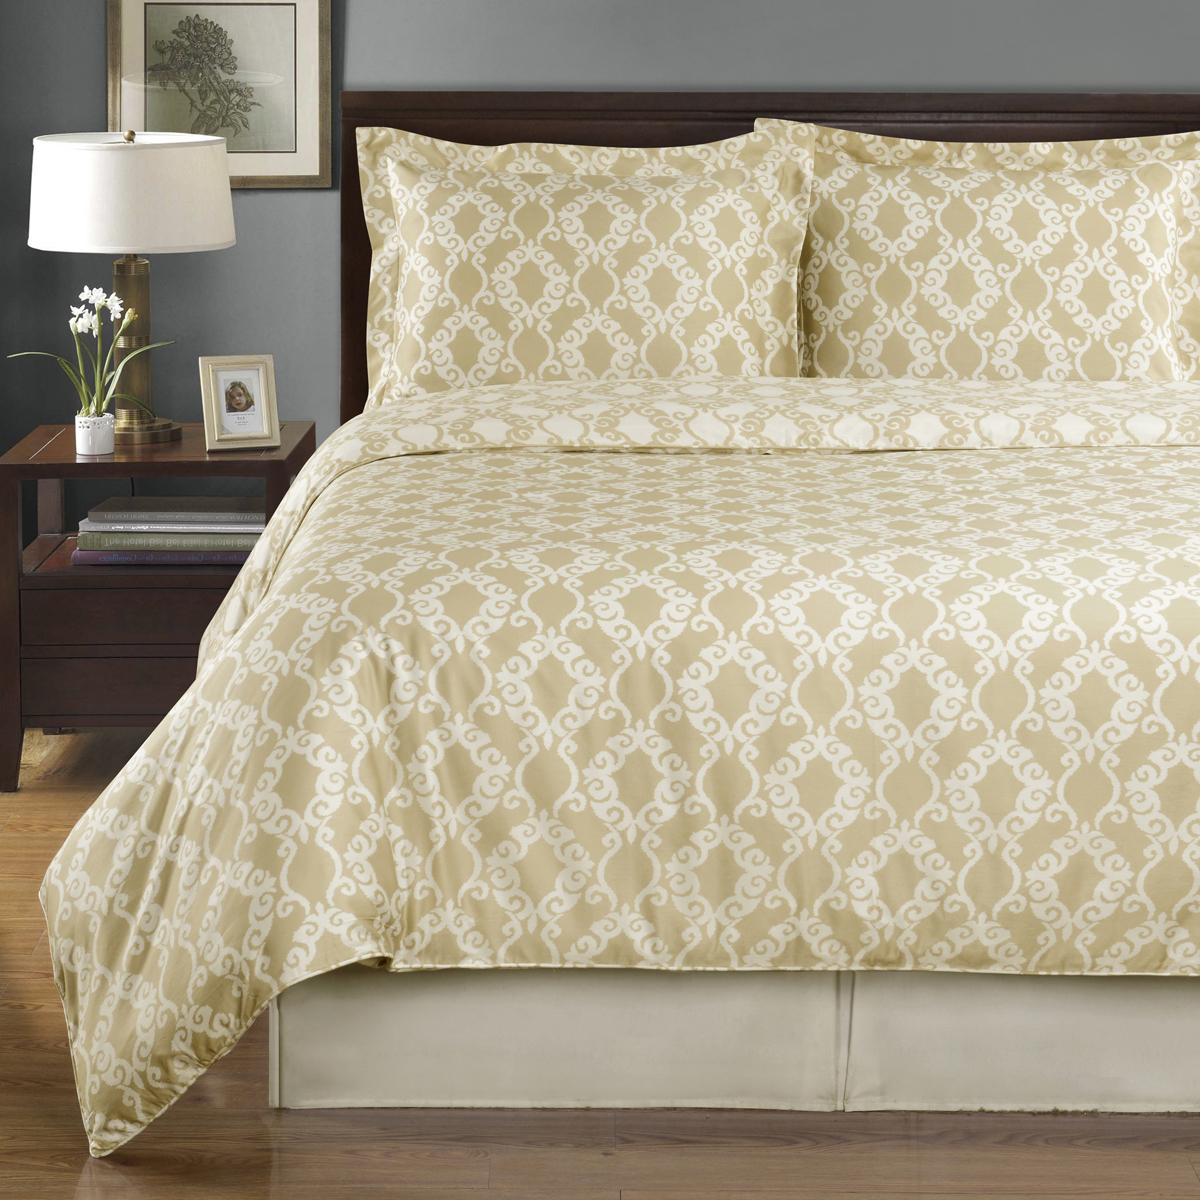 Sierra Silky Soft 100-Percent Cotton Reversible Duvet Cover Set Smooth & Soft Appearance- 3 Sizes